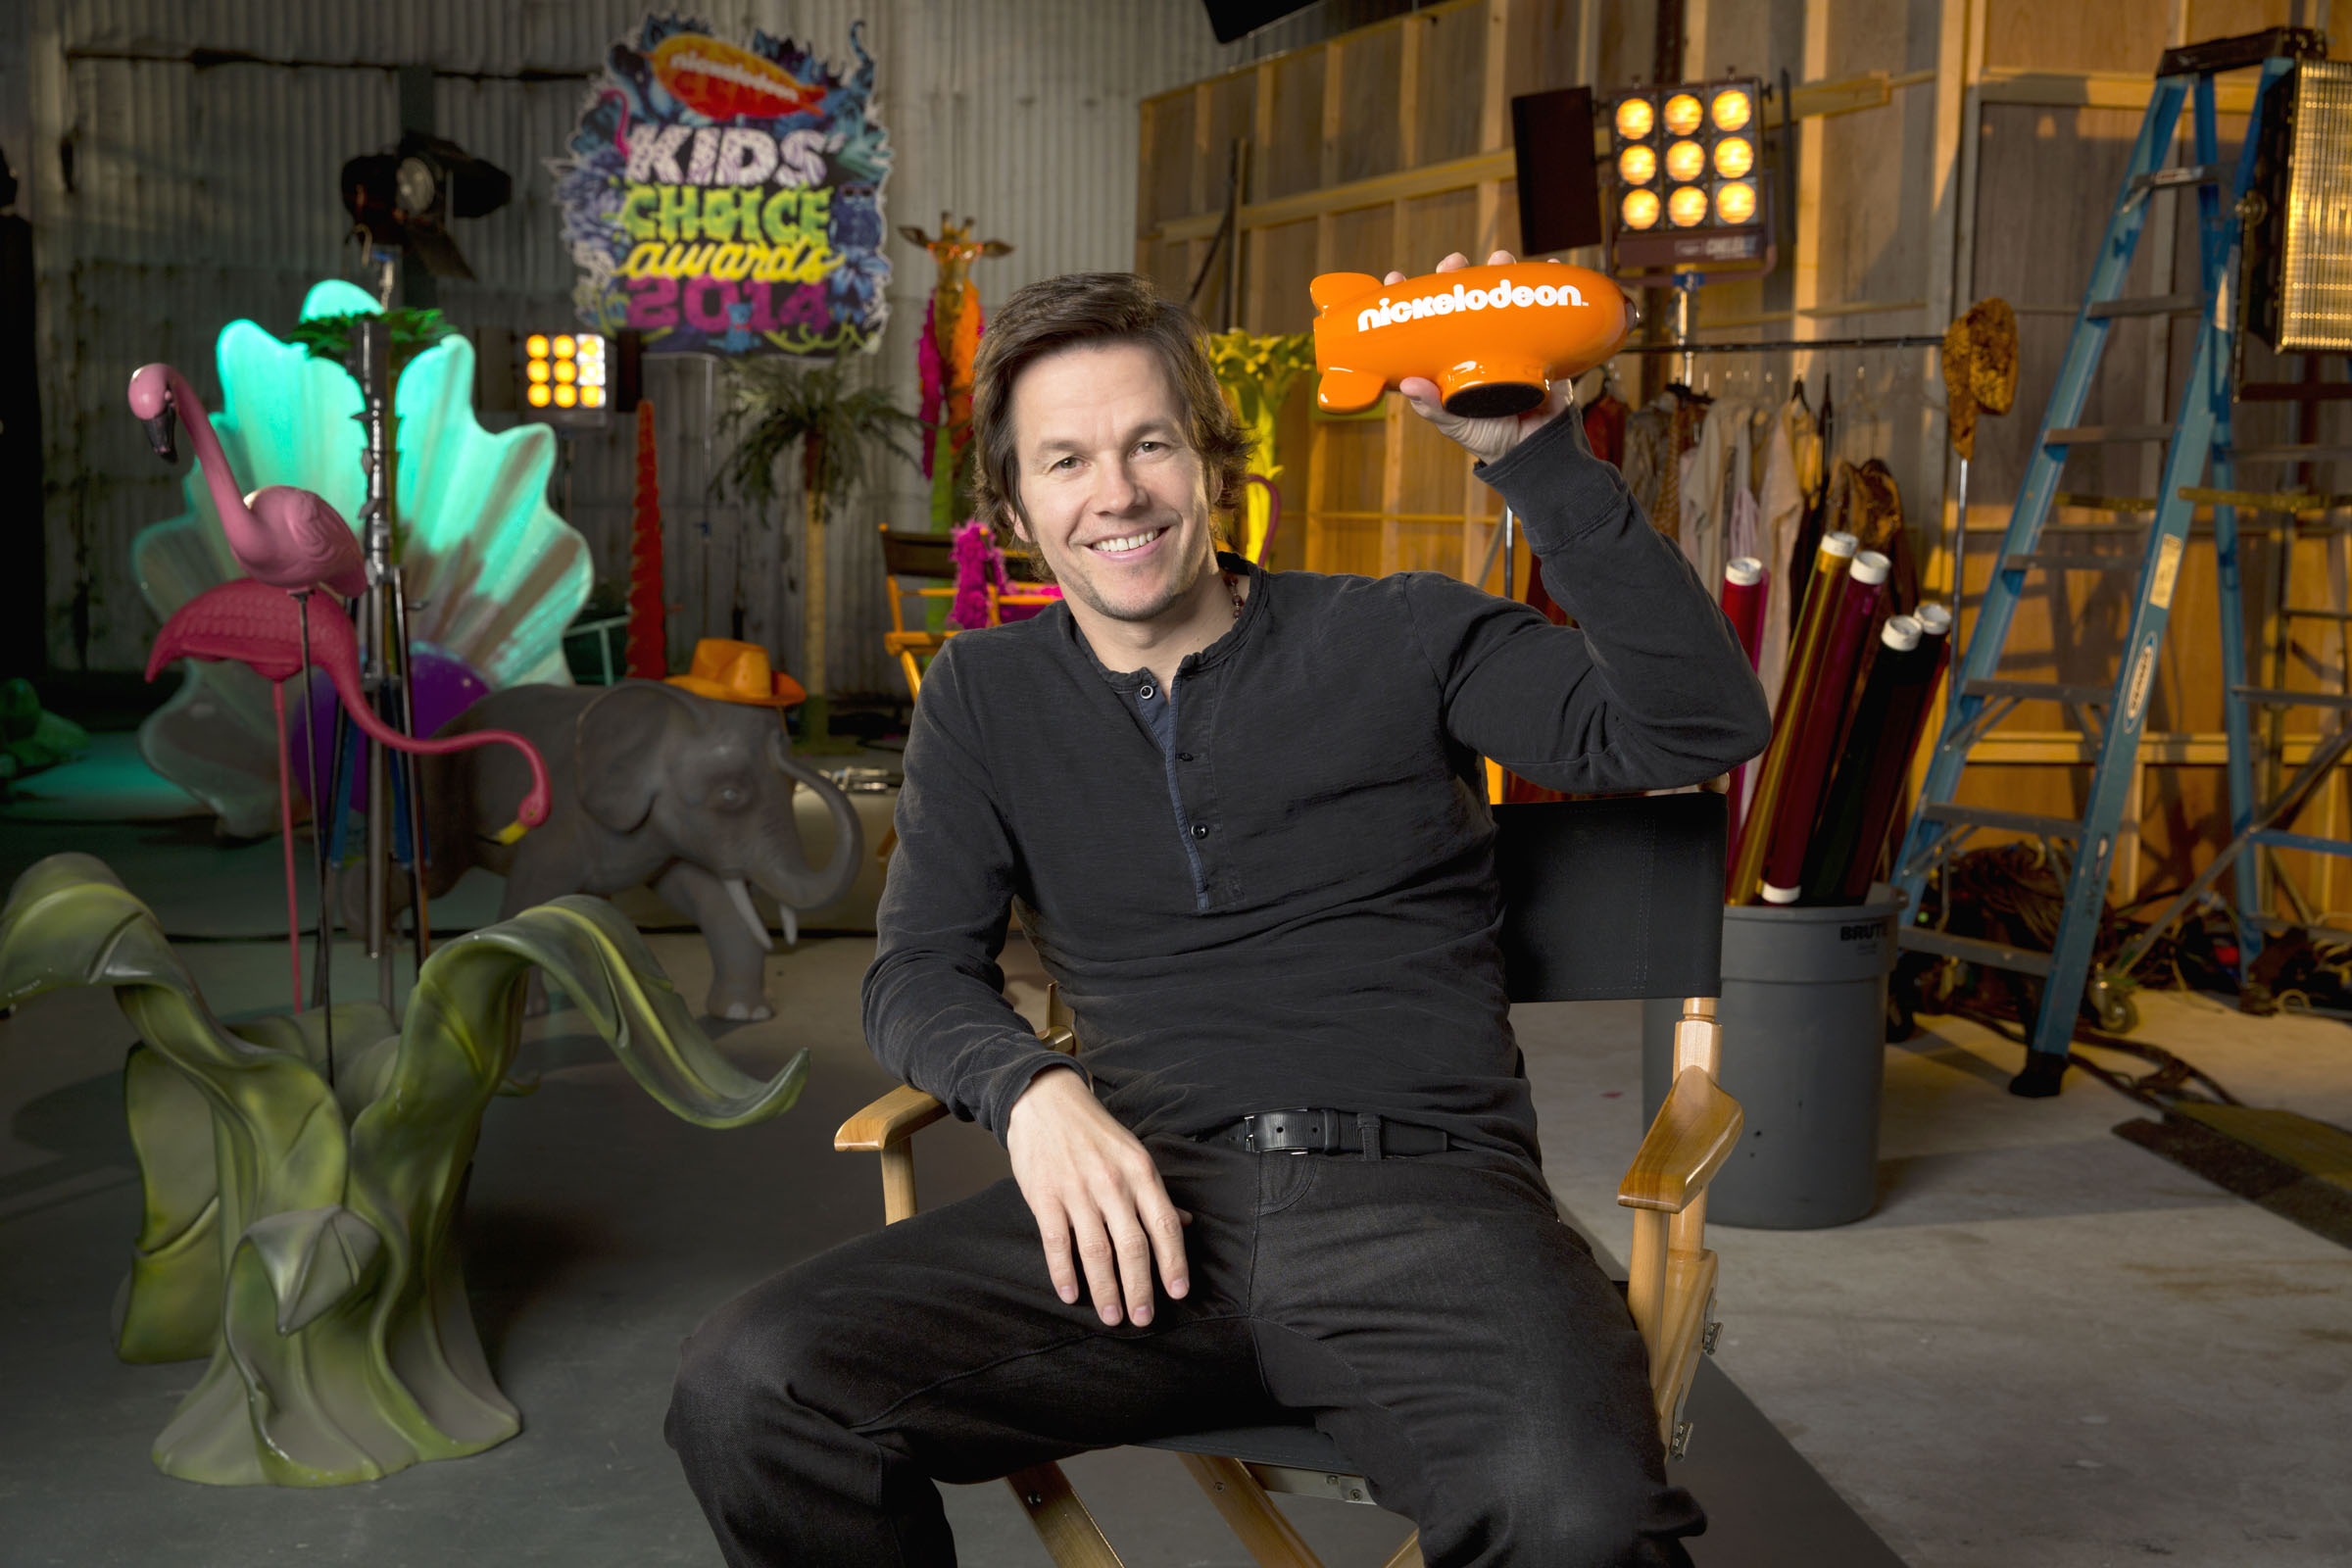 Mark Wahlberg, host of Nickelodeon's 27th Annual Kids' Choice Awards. Photo Credit: Sam Jones/Nickelodeon ©2014 Viacom International Inc., All Rights Reserved